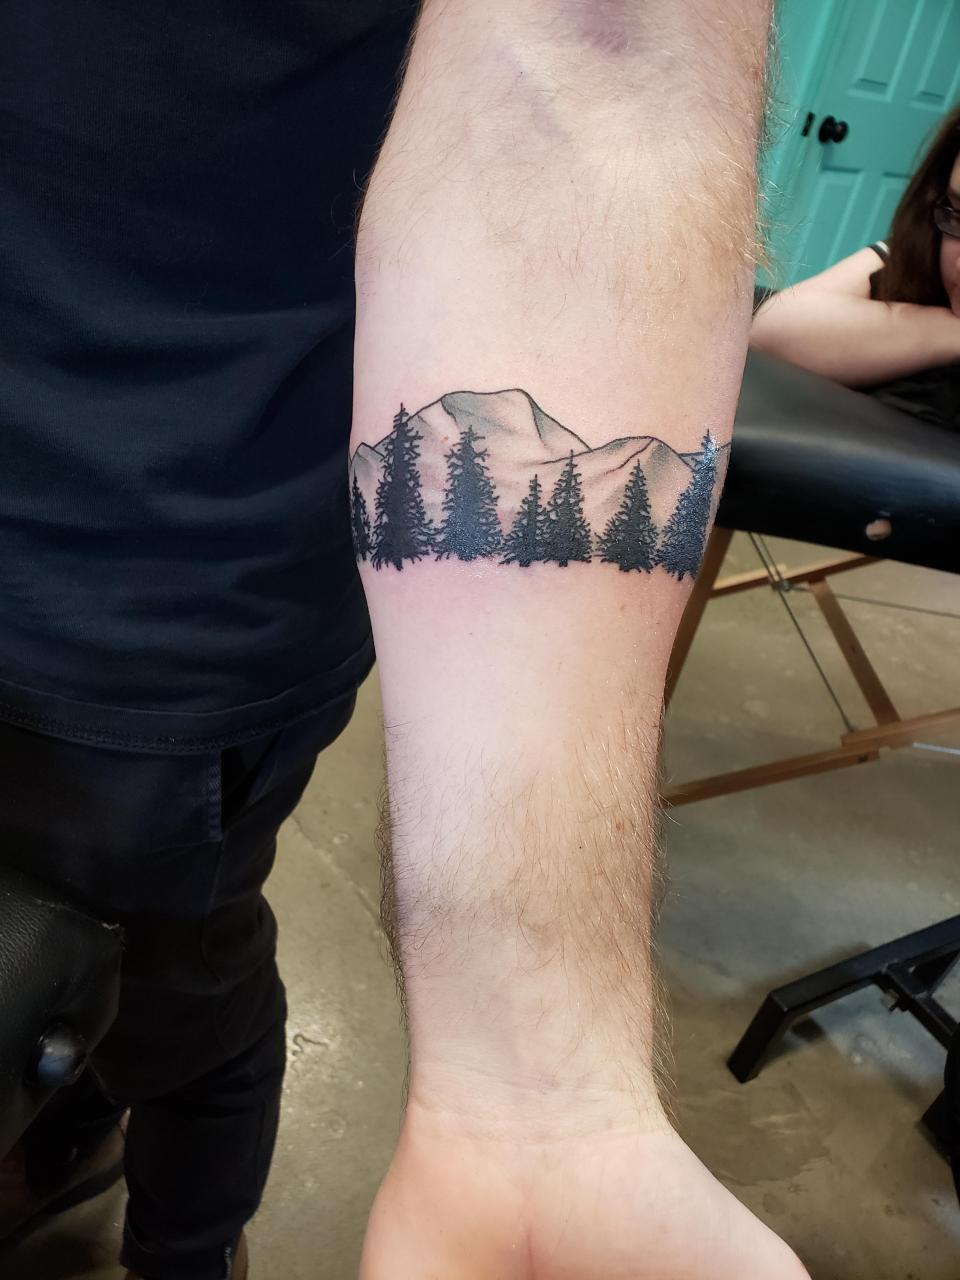 First tattoo, arm band of the sister mountains in Bend, Oregon. Done by Jelena Wolves in Richmond, VA